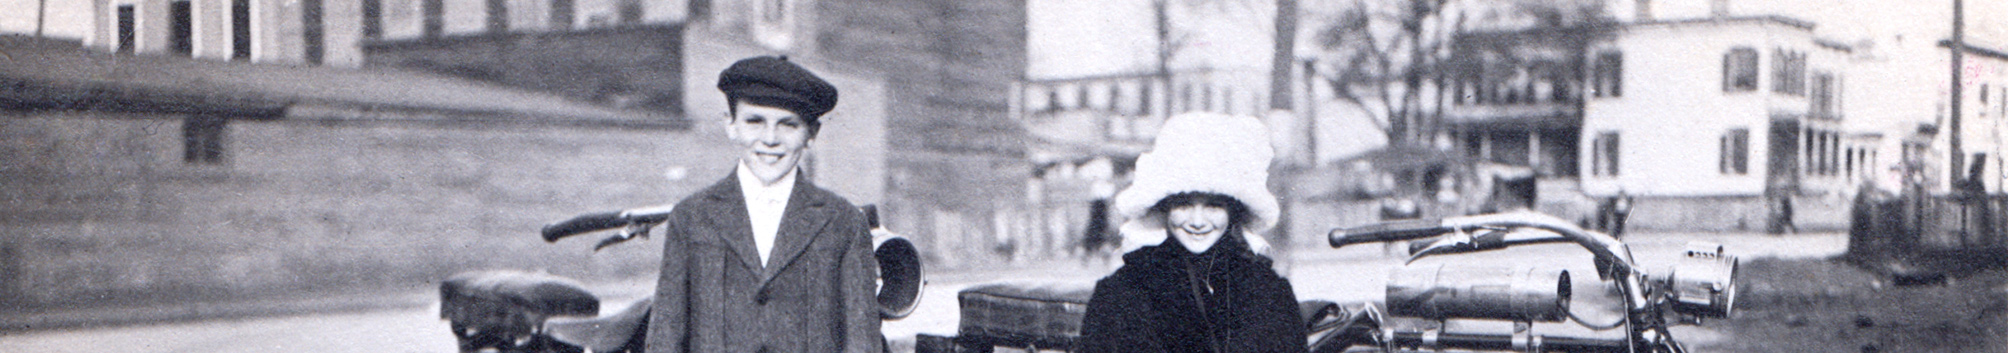 My Dad in 1913